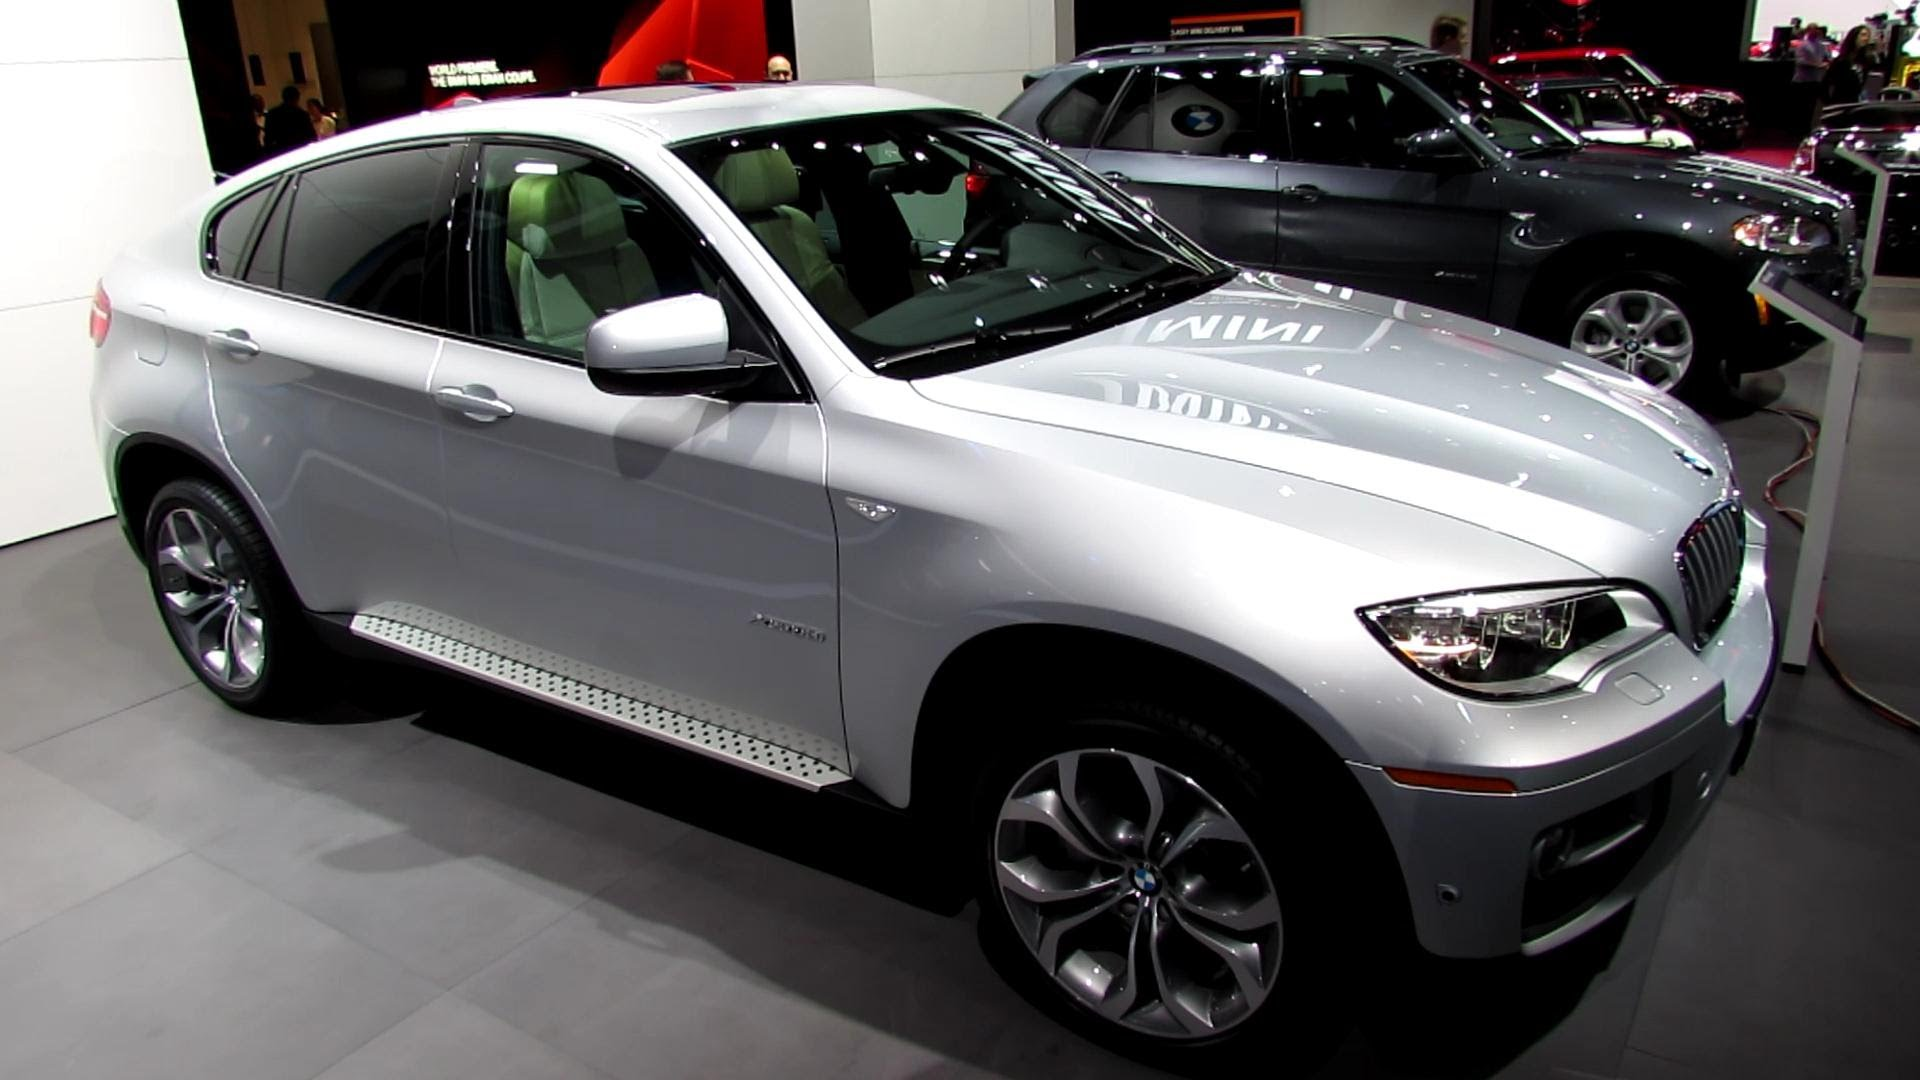 2013 bmw x6 information and photos momentcar. Black Bedroom Furniture Sets. Home Design Ideas